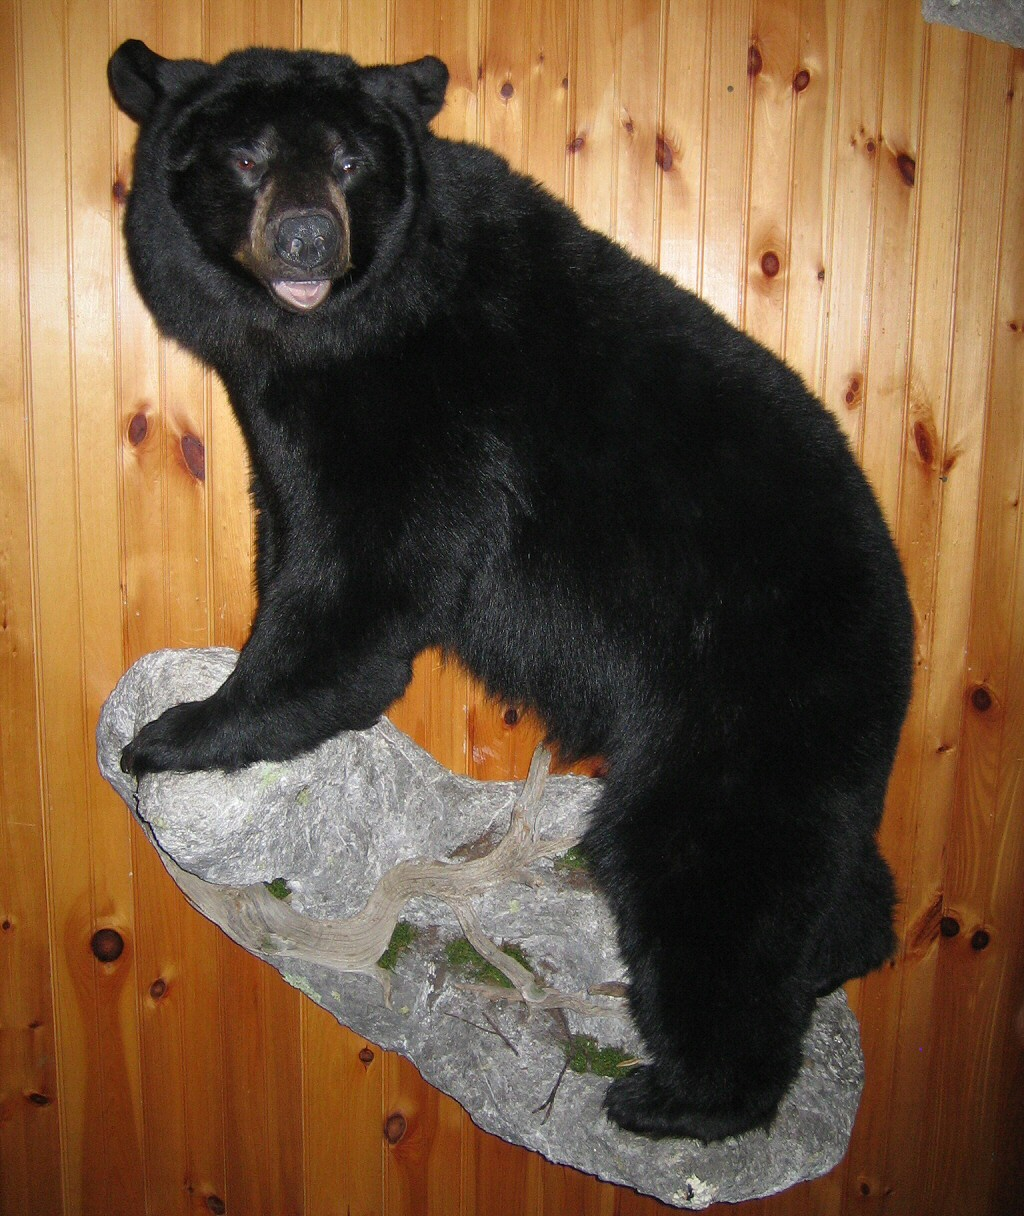 Black Bear Full Body Wall Mounts - Black Bears Full Body Mounted For Walls - Custom Mounted On Branches, Trees, Logs, Rocks With Natural Habitats